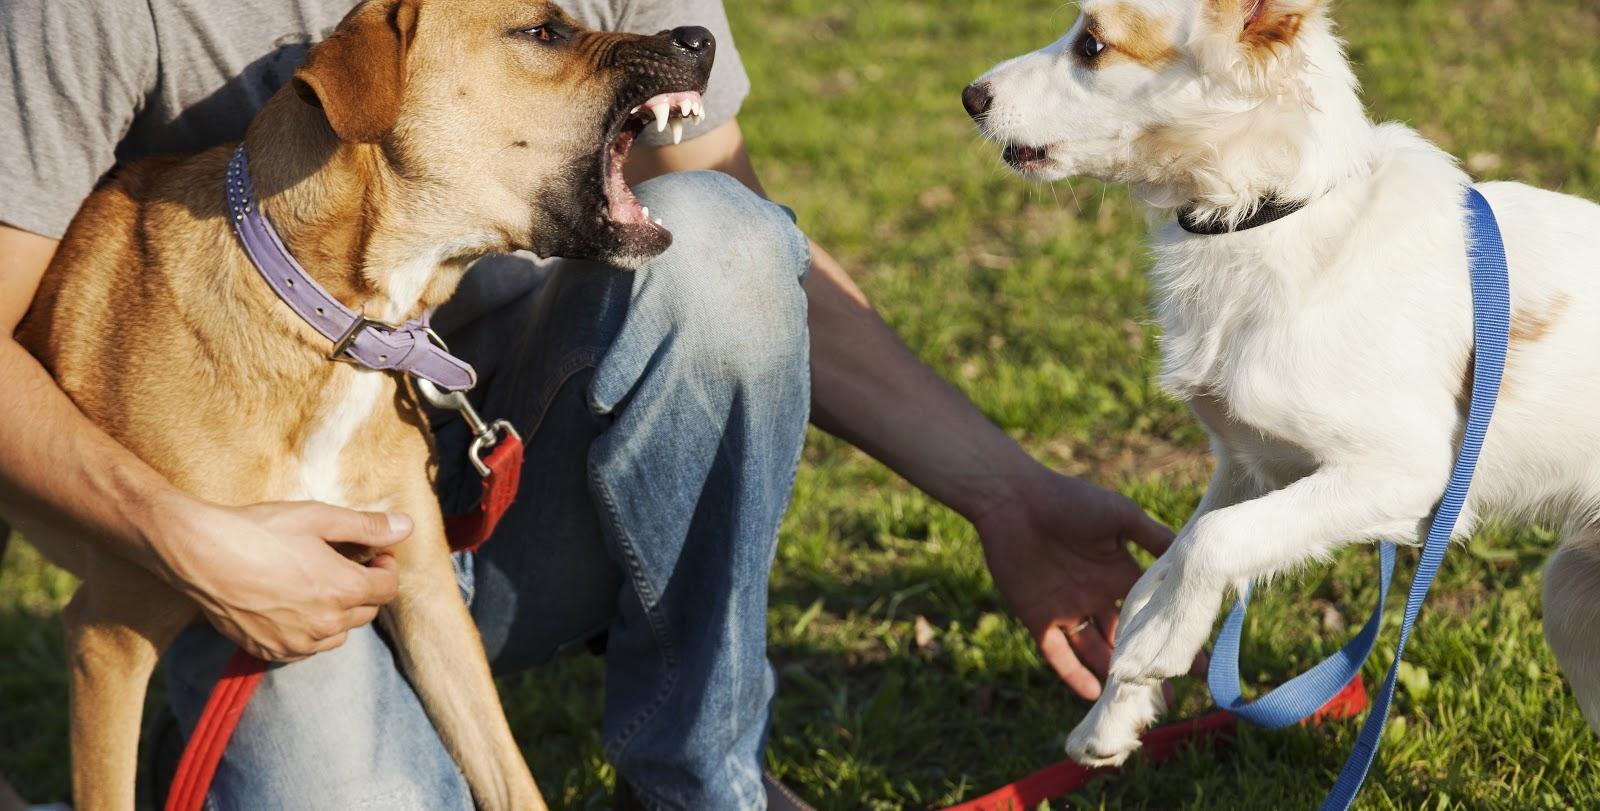 Dogs are man's best friend but if untrained or inherently vicious can be a danger to you and your loved ones.